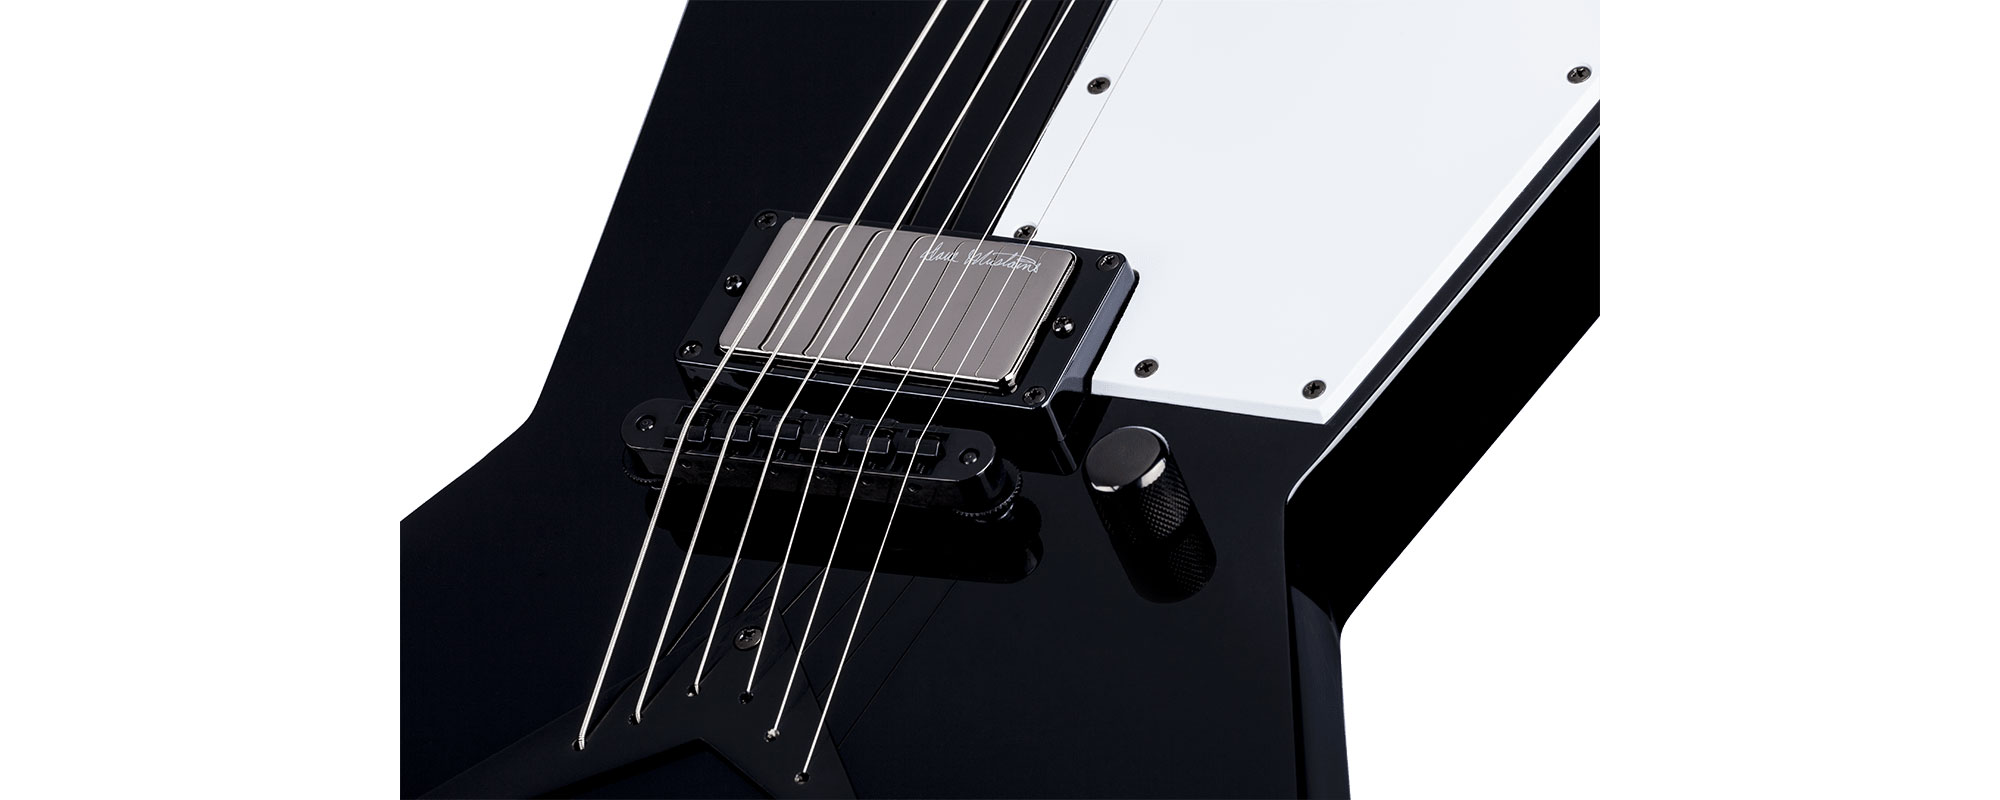 dean dave mustaine zero punk 6 string electric guitar classic black zero punk deg16 zero punk. Black Bedroom Furniture Sets. Home Design Ideas